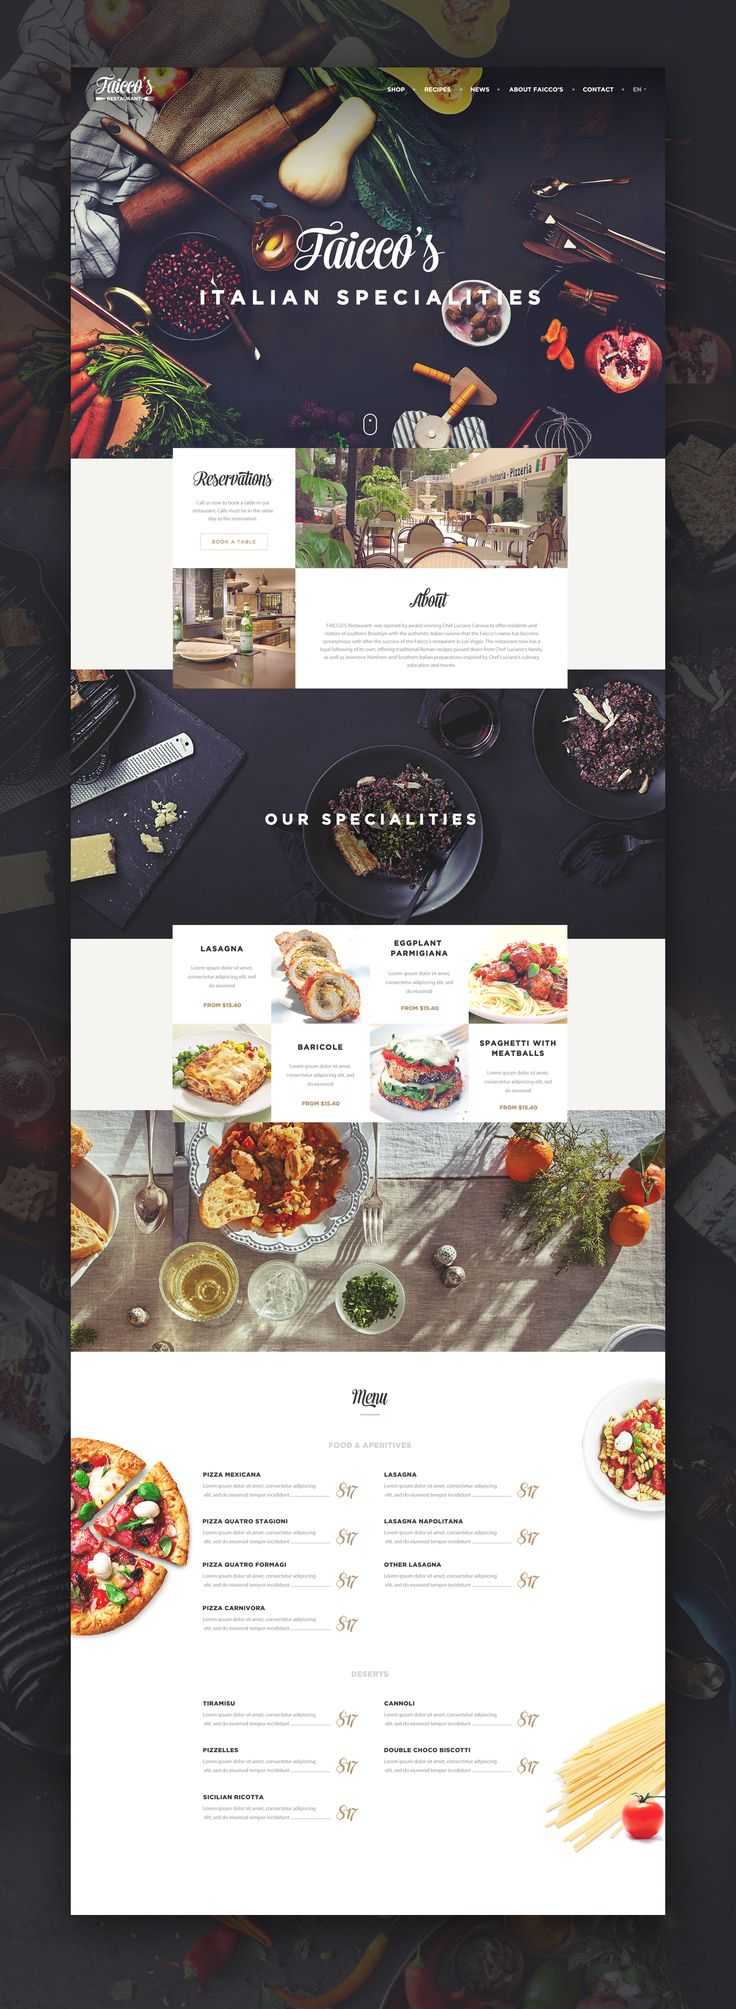 Faicco's italian Restaurant website restyling. Ui design concept by Virgil Pana on Dribbble. https://www.bloxup.com/